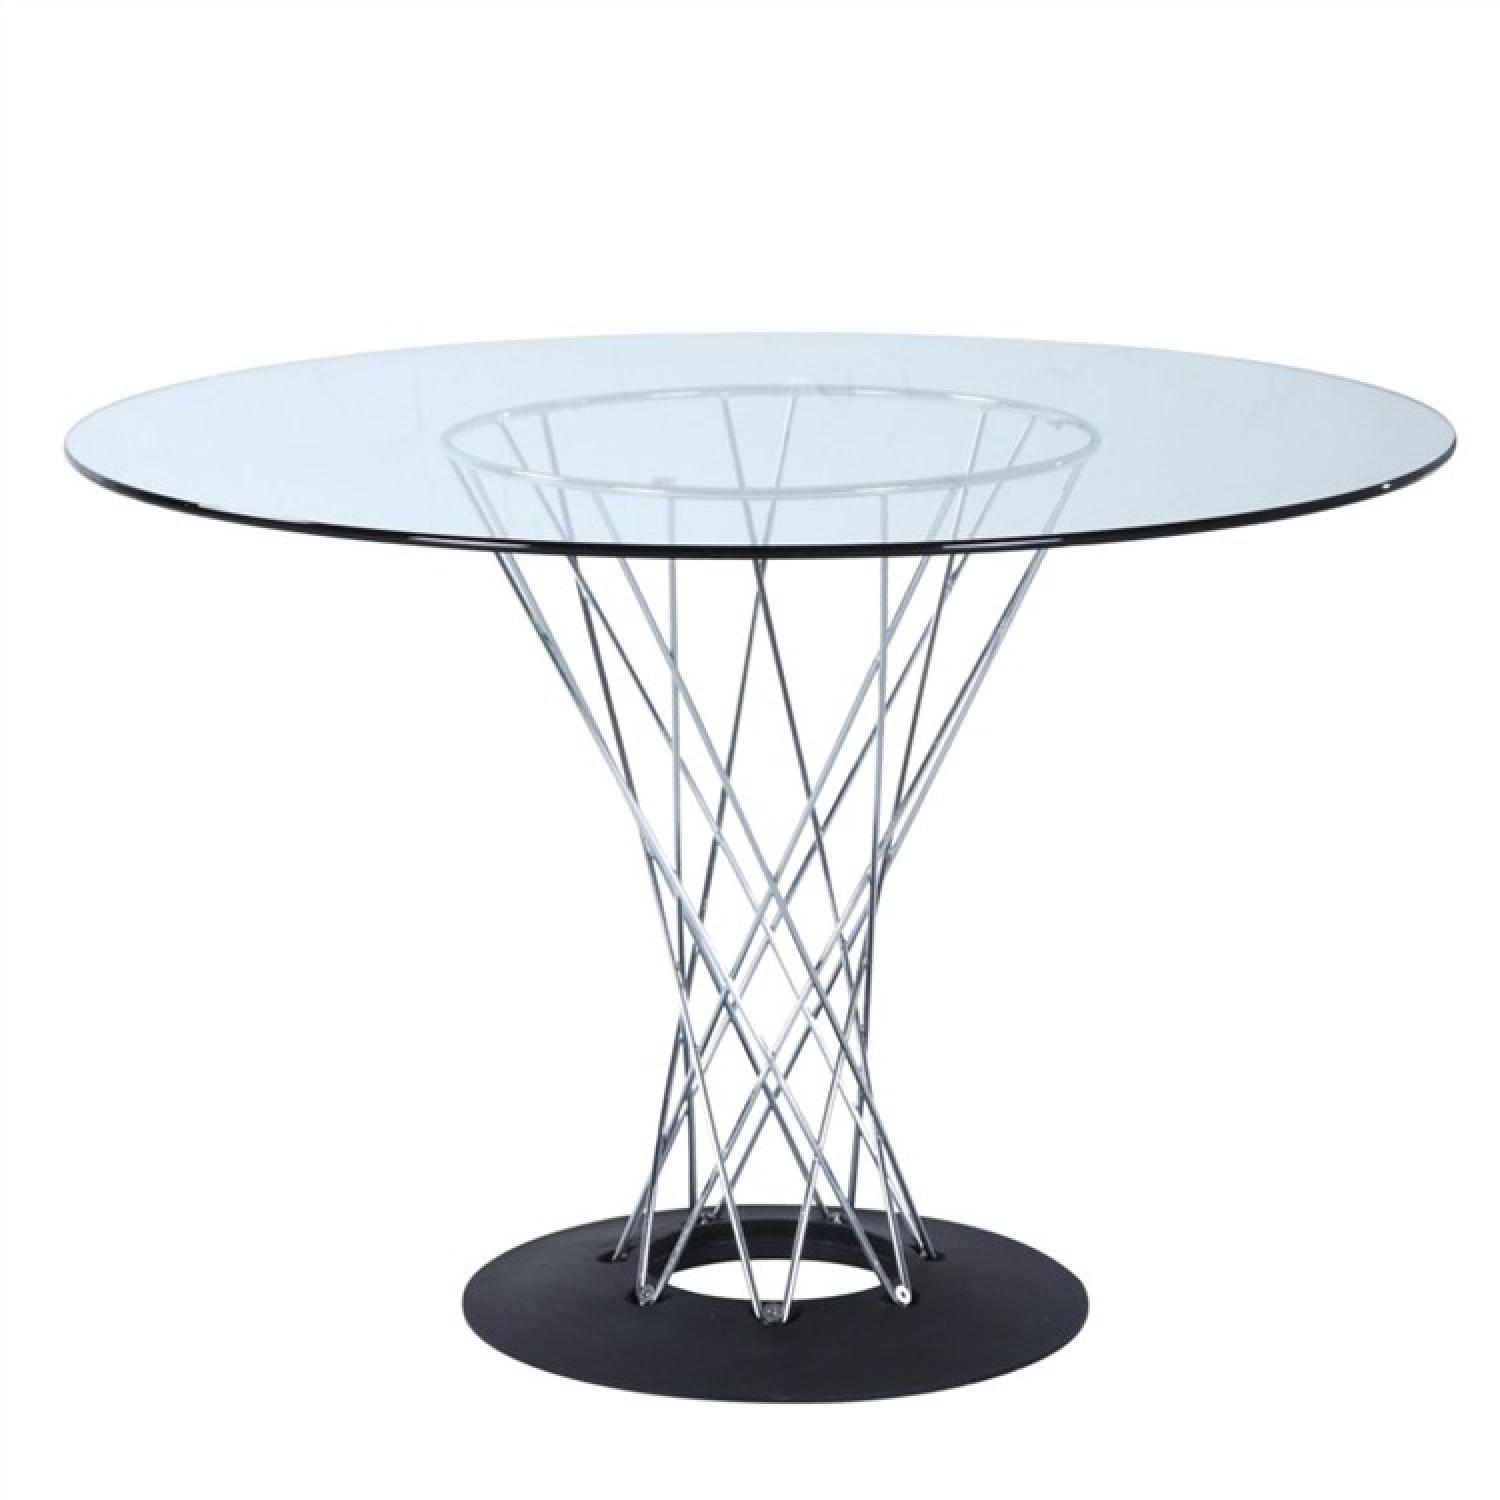 Retro Style Dining Table w/ Tempered Glass Top & Chrome Base